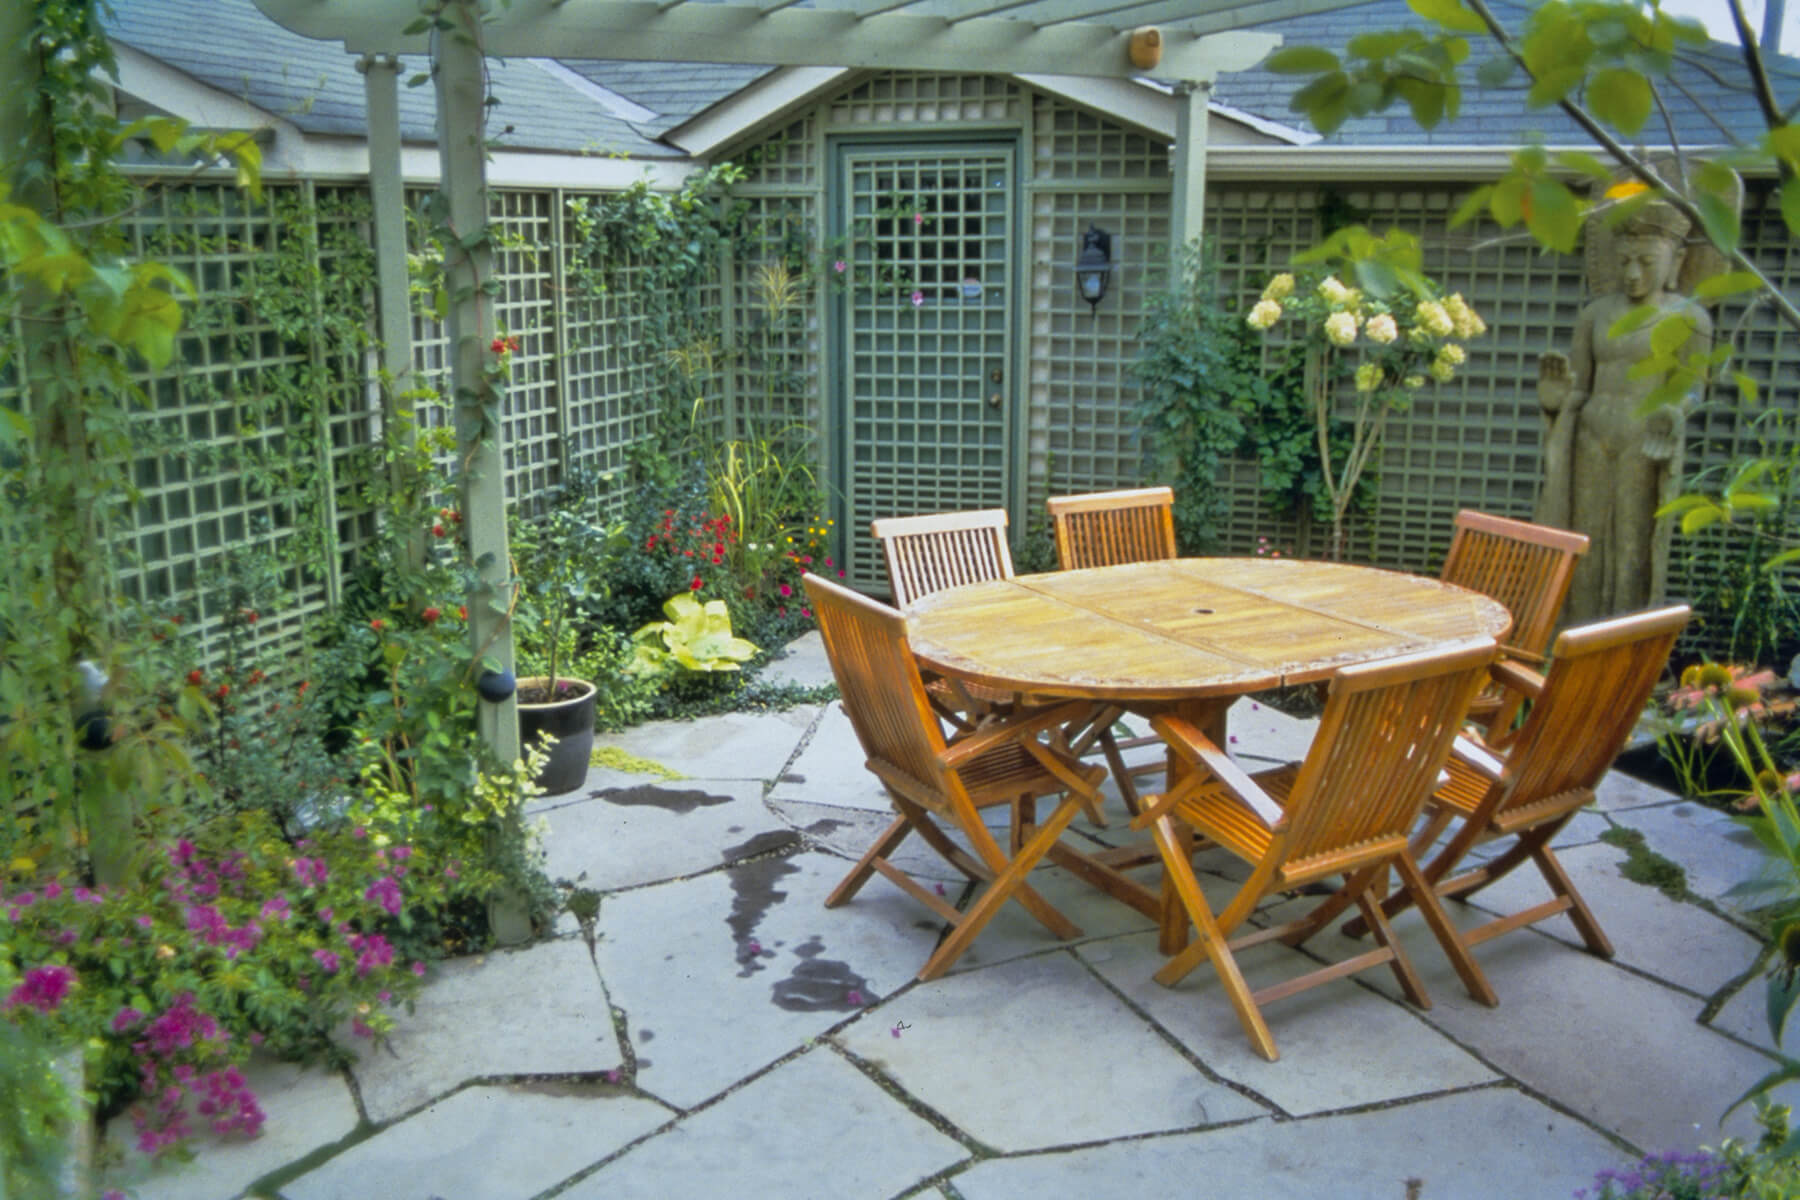 award winning backyard garden with table chairs and lattice